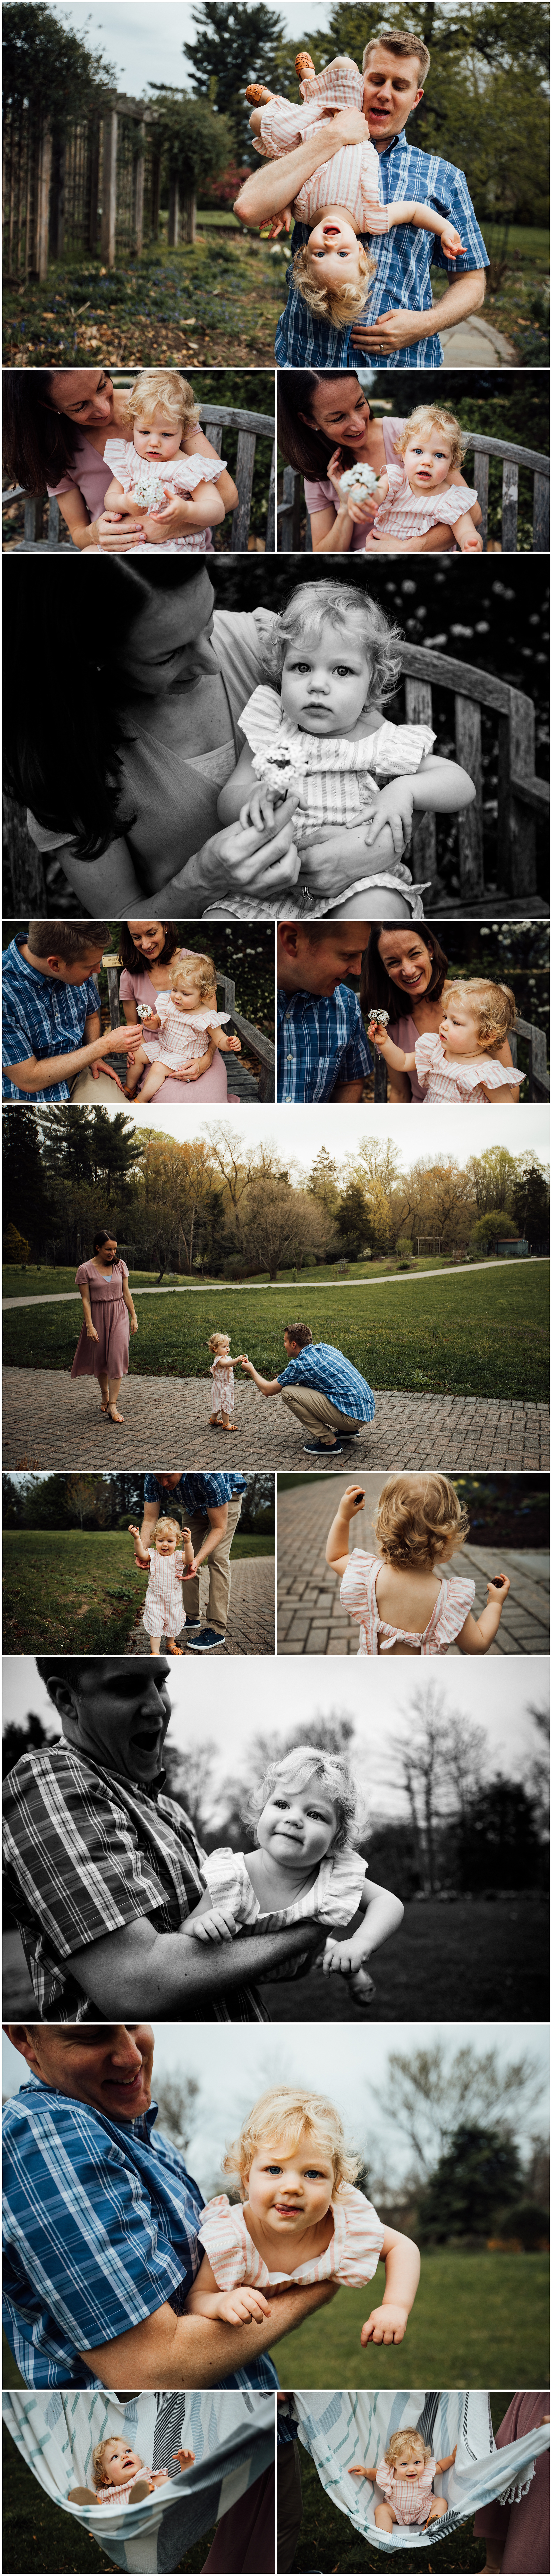 Huntsville Alabama family photographer spring toddler family session by Rachel K Photo